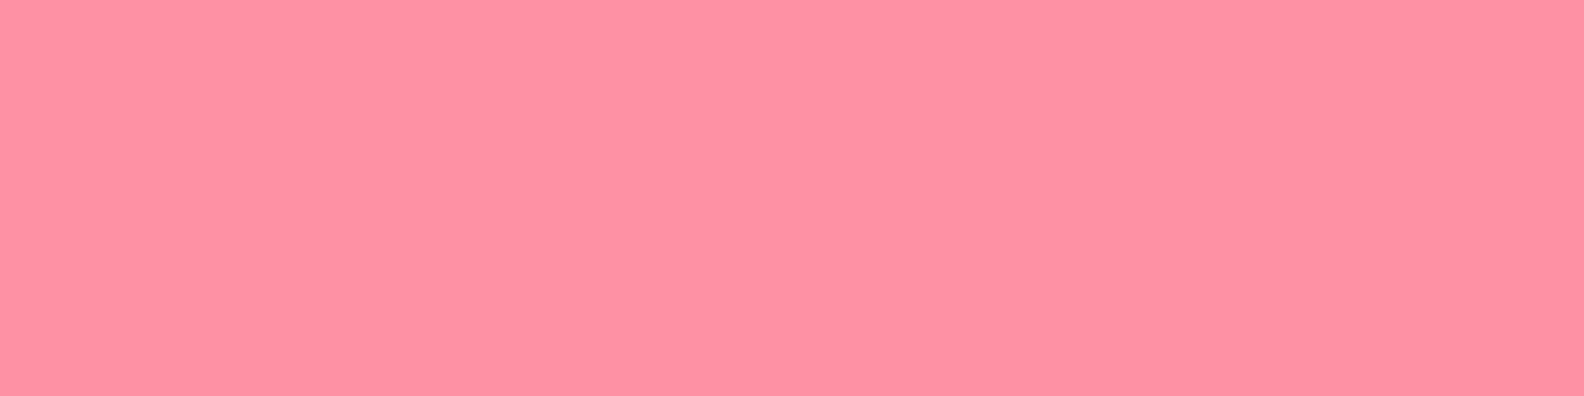 1584x396 Salmon Pink Solid Color Background